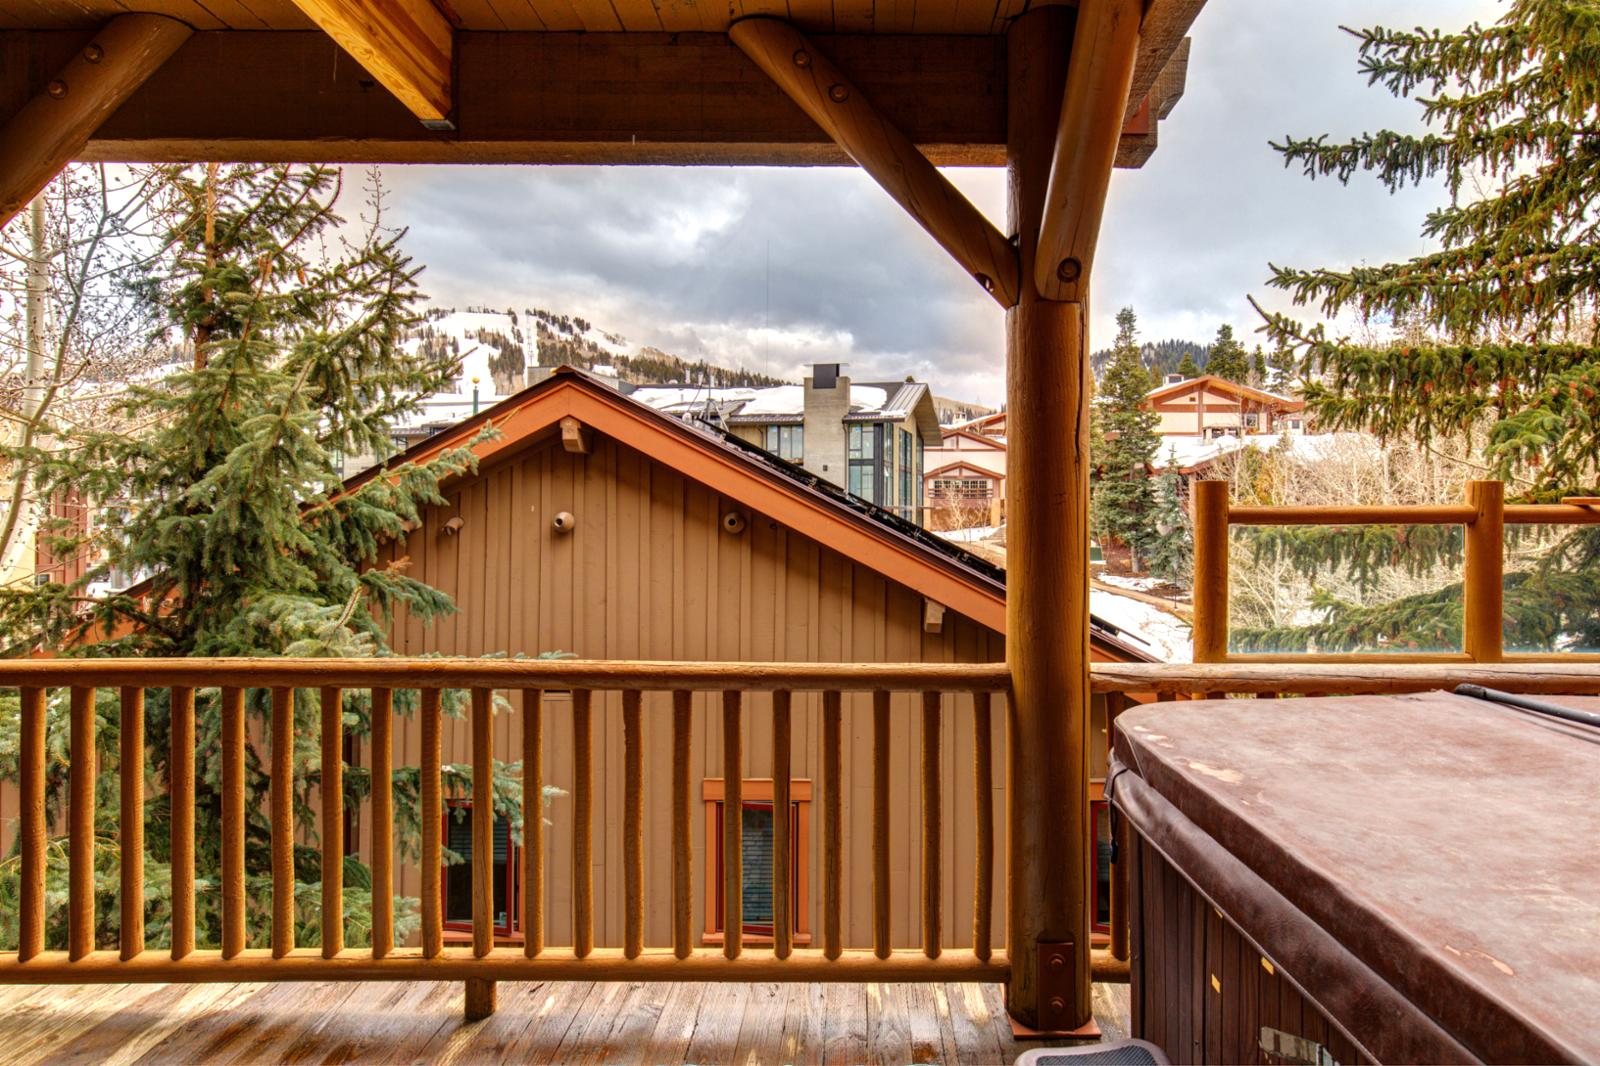 Soak in this large hot tub surrounded by mountain views